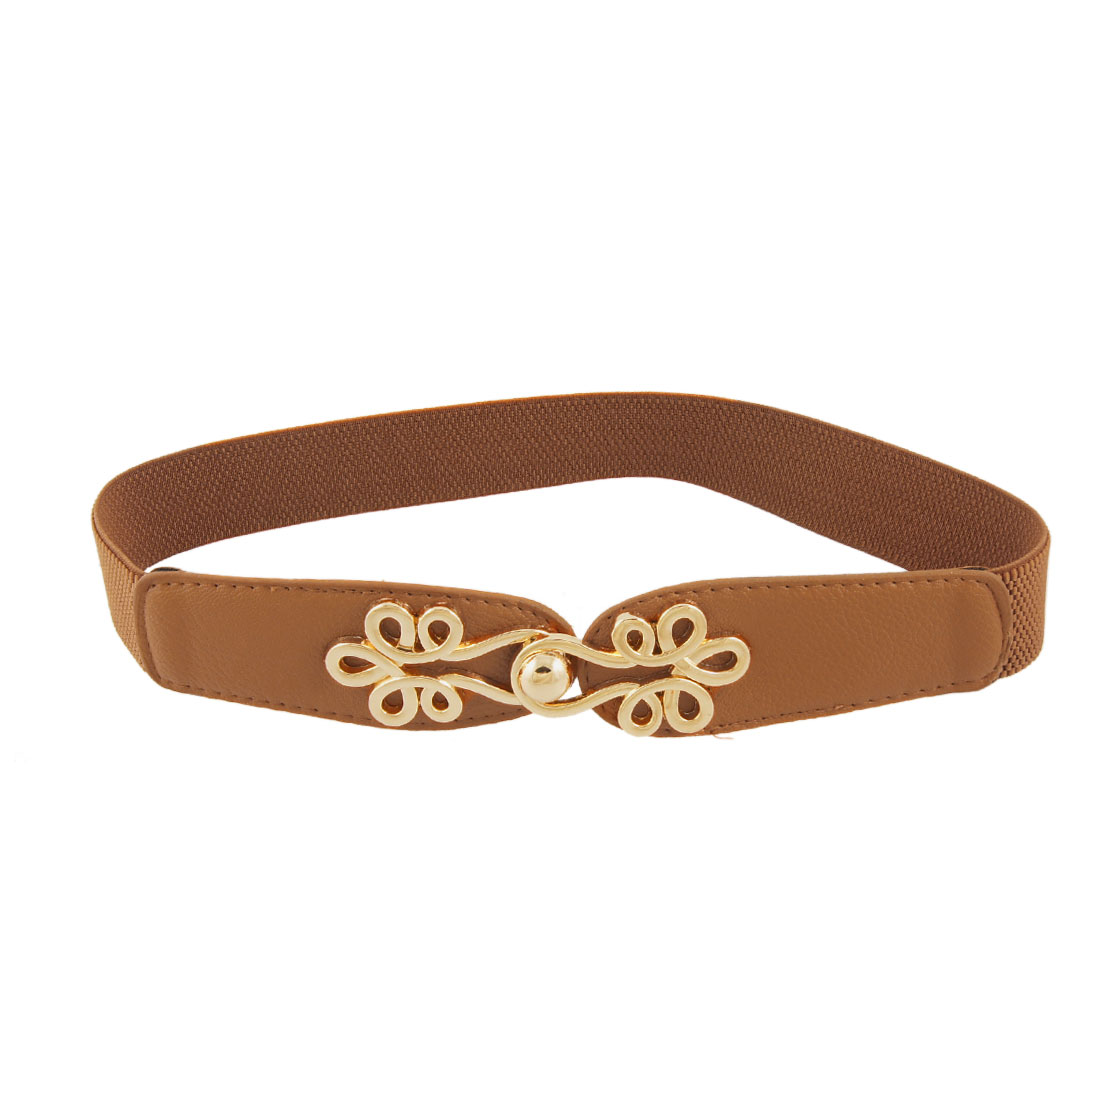 Woman Gold Tone Metal Interlocking Buckle Elastic Cinch Belt Brown